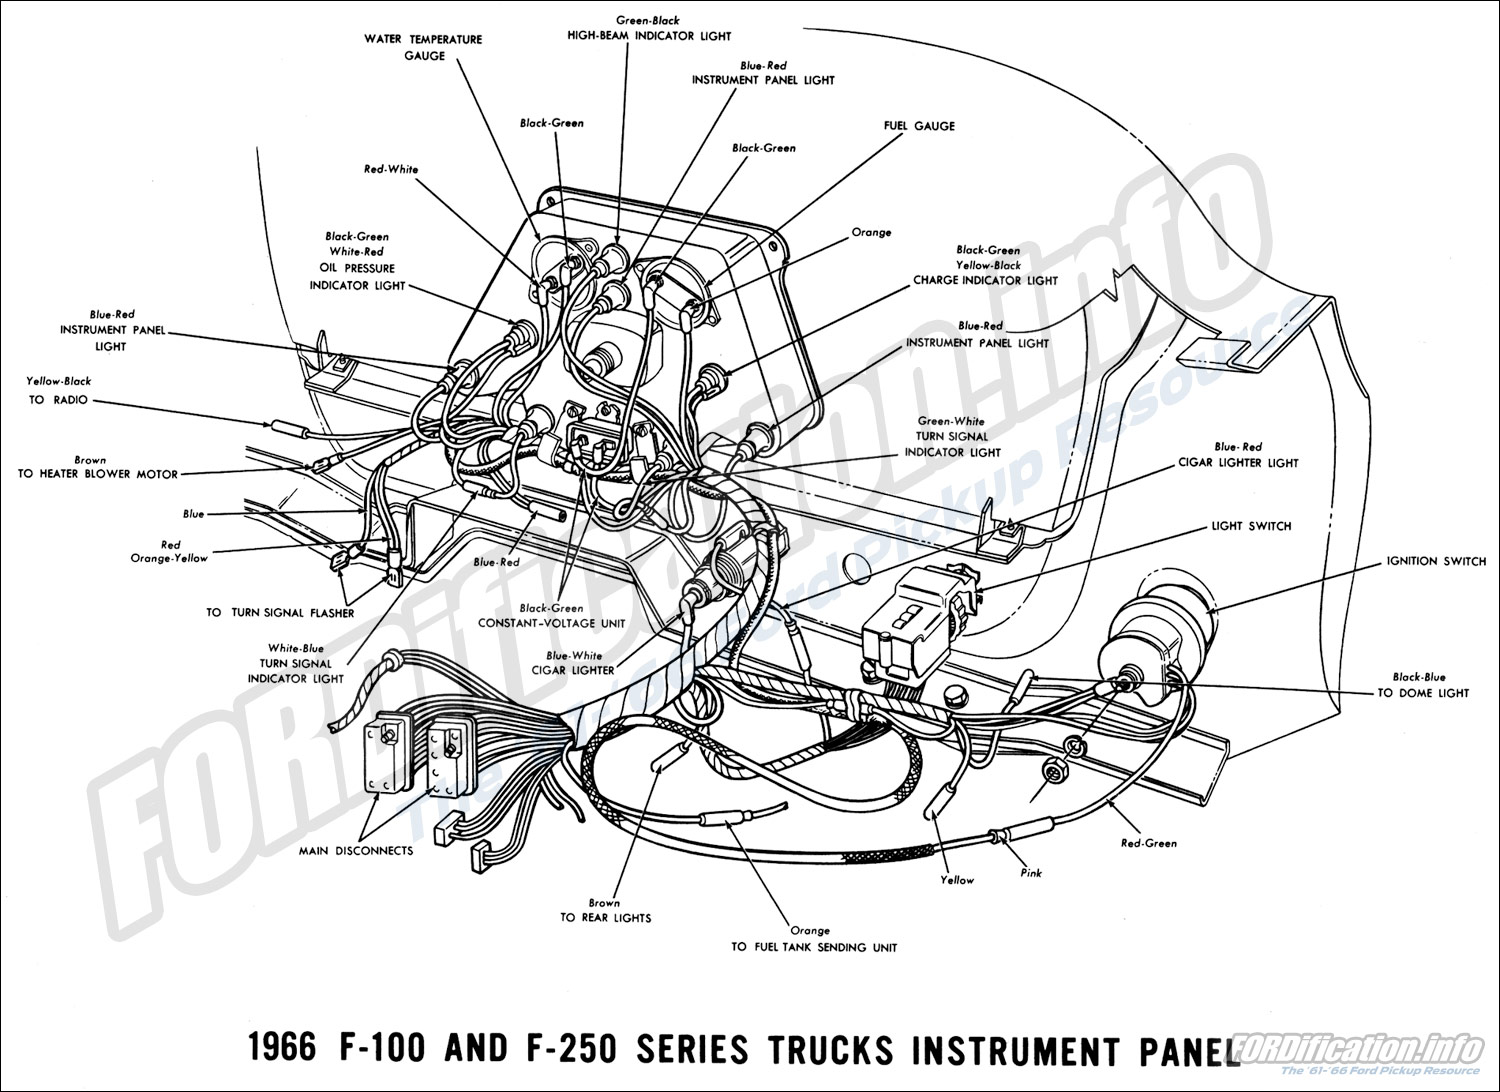 66instrumentpanel 1966 ford truck wiring diagrams fordification info the '61 '66 1966 ford truck wiring diagram at eliteediting.co